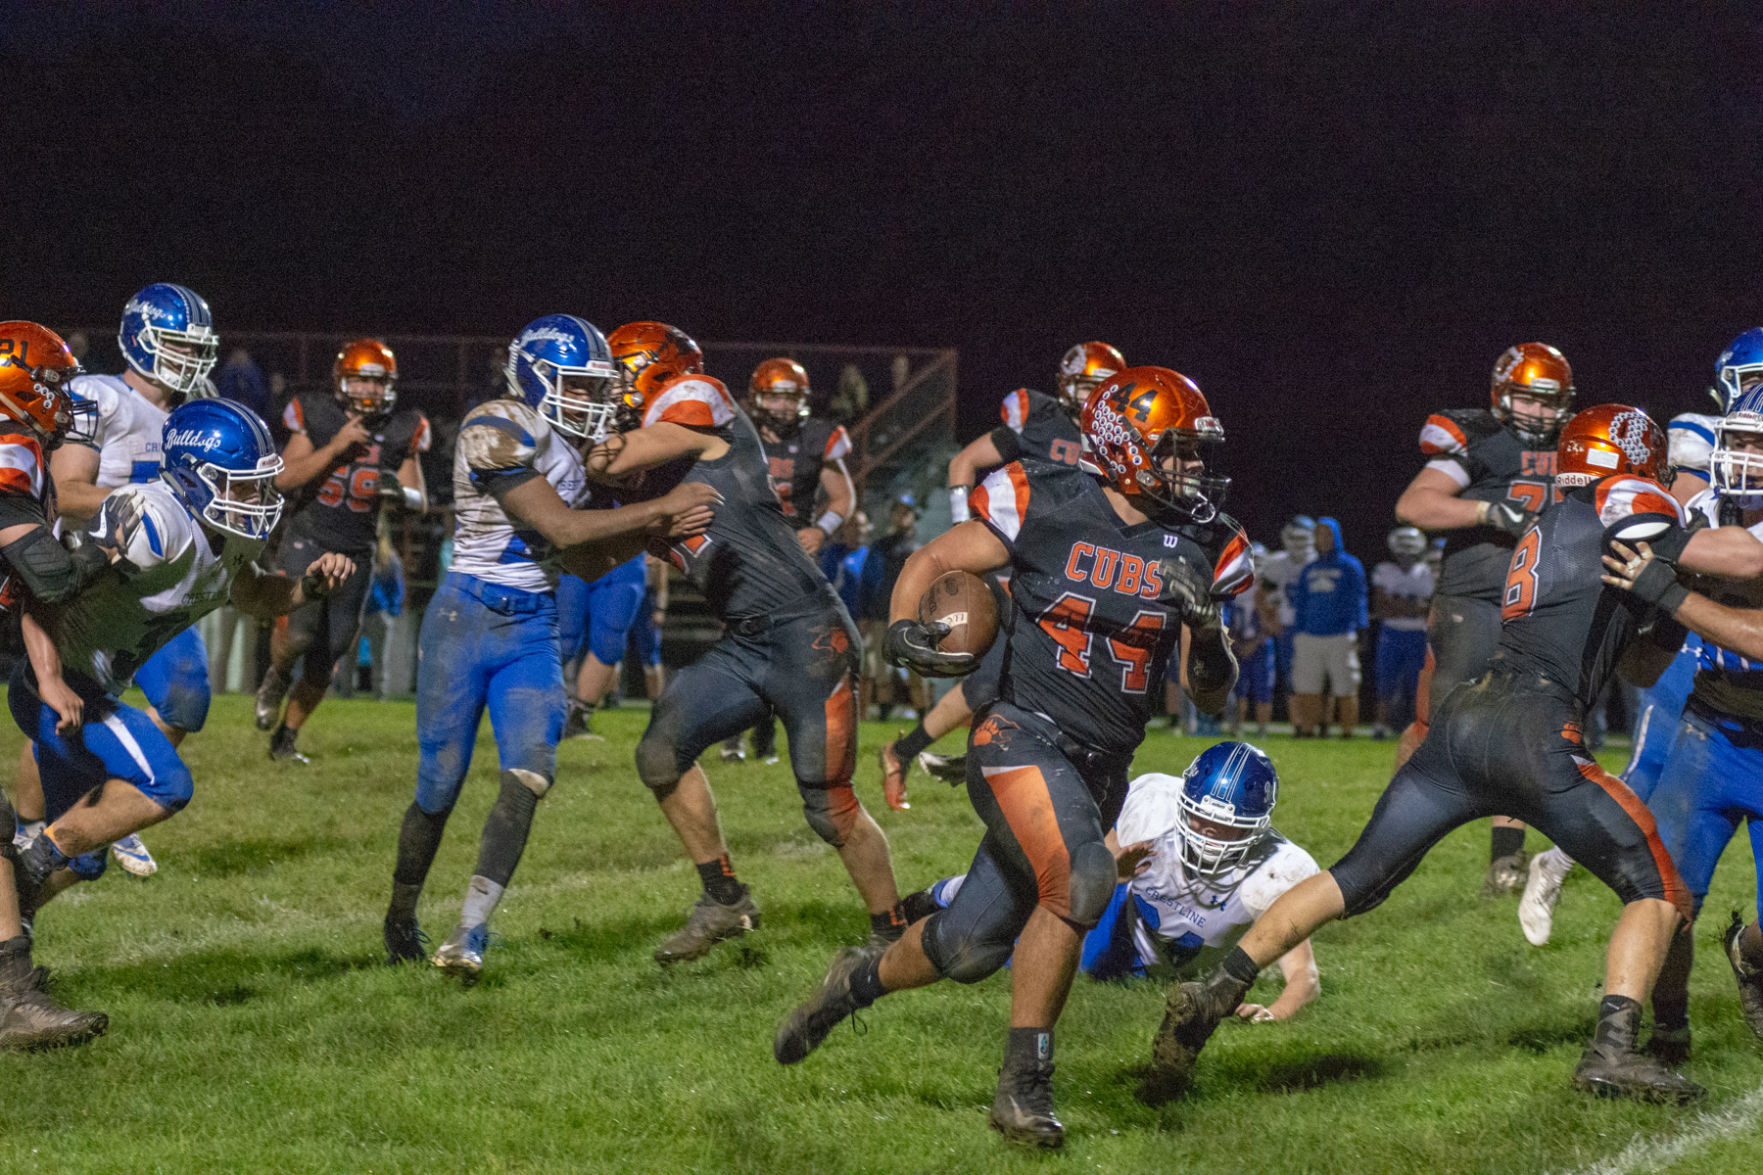 Long Live the King: Lucas RB Grover becomes career rushing leader